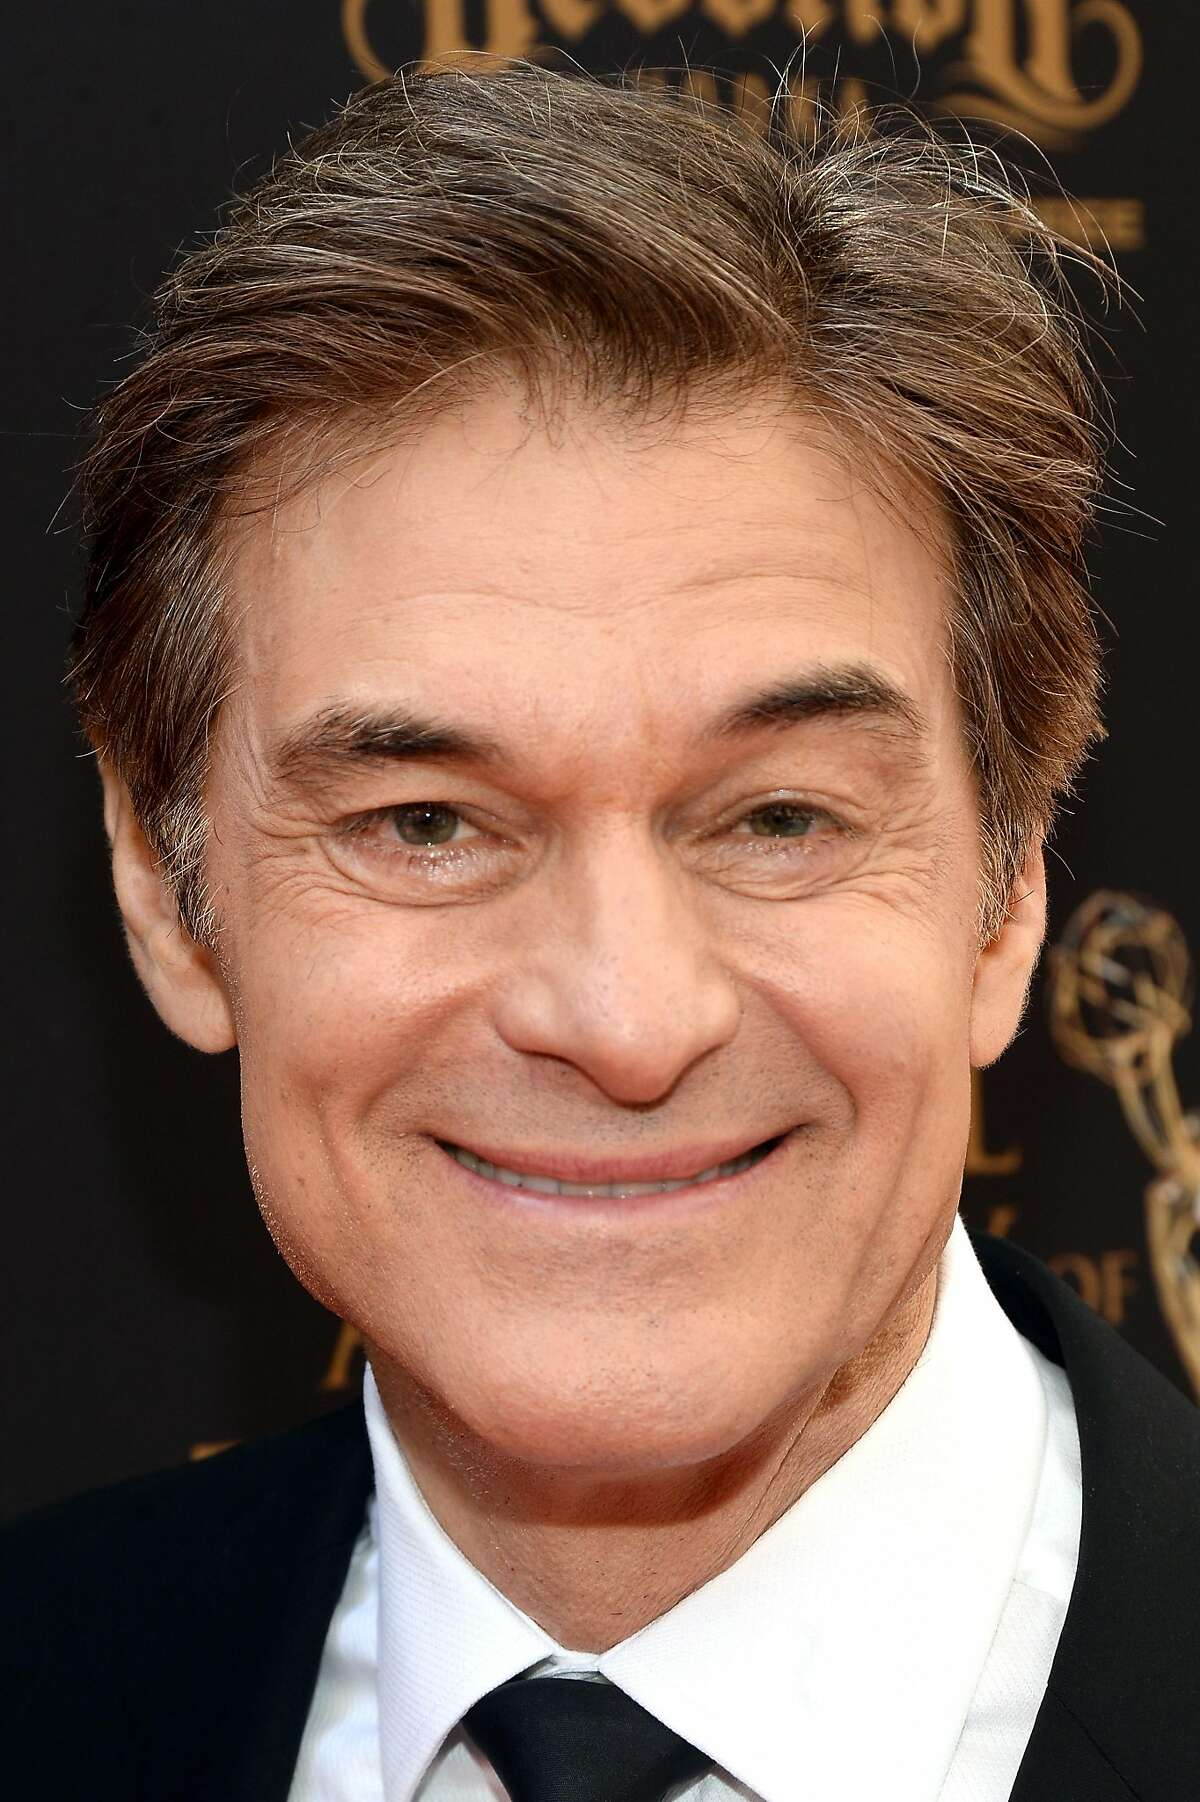 LOS ANGELES, CA - MAY 01: Dr. Mehmet Oz arrives at the 43rd Annual Daytime Emmy Awards at the Westin Bonaventure Hotel on May 1, 2016 in Los Angeles, California. (Photo by Matt Winkelmeyer/Getty Images for NATAS)